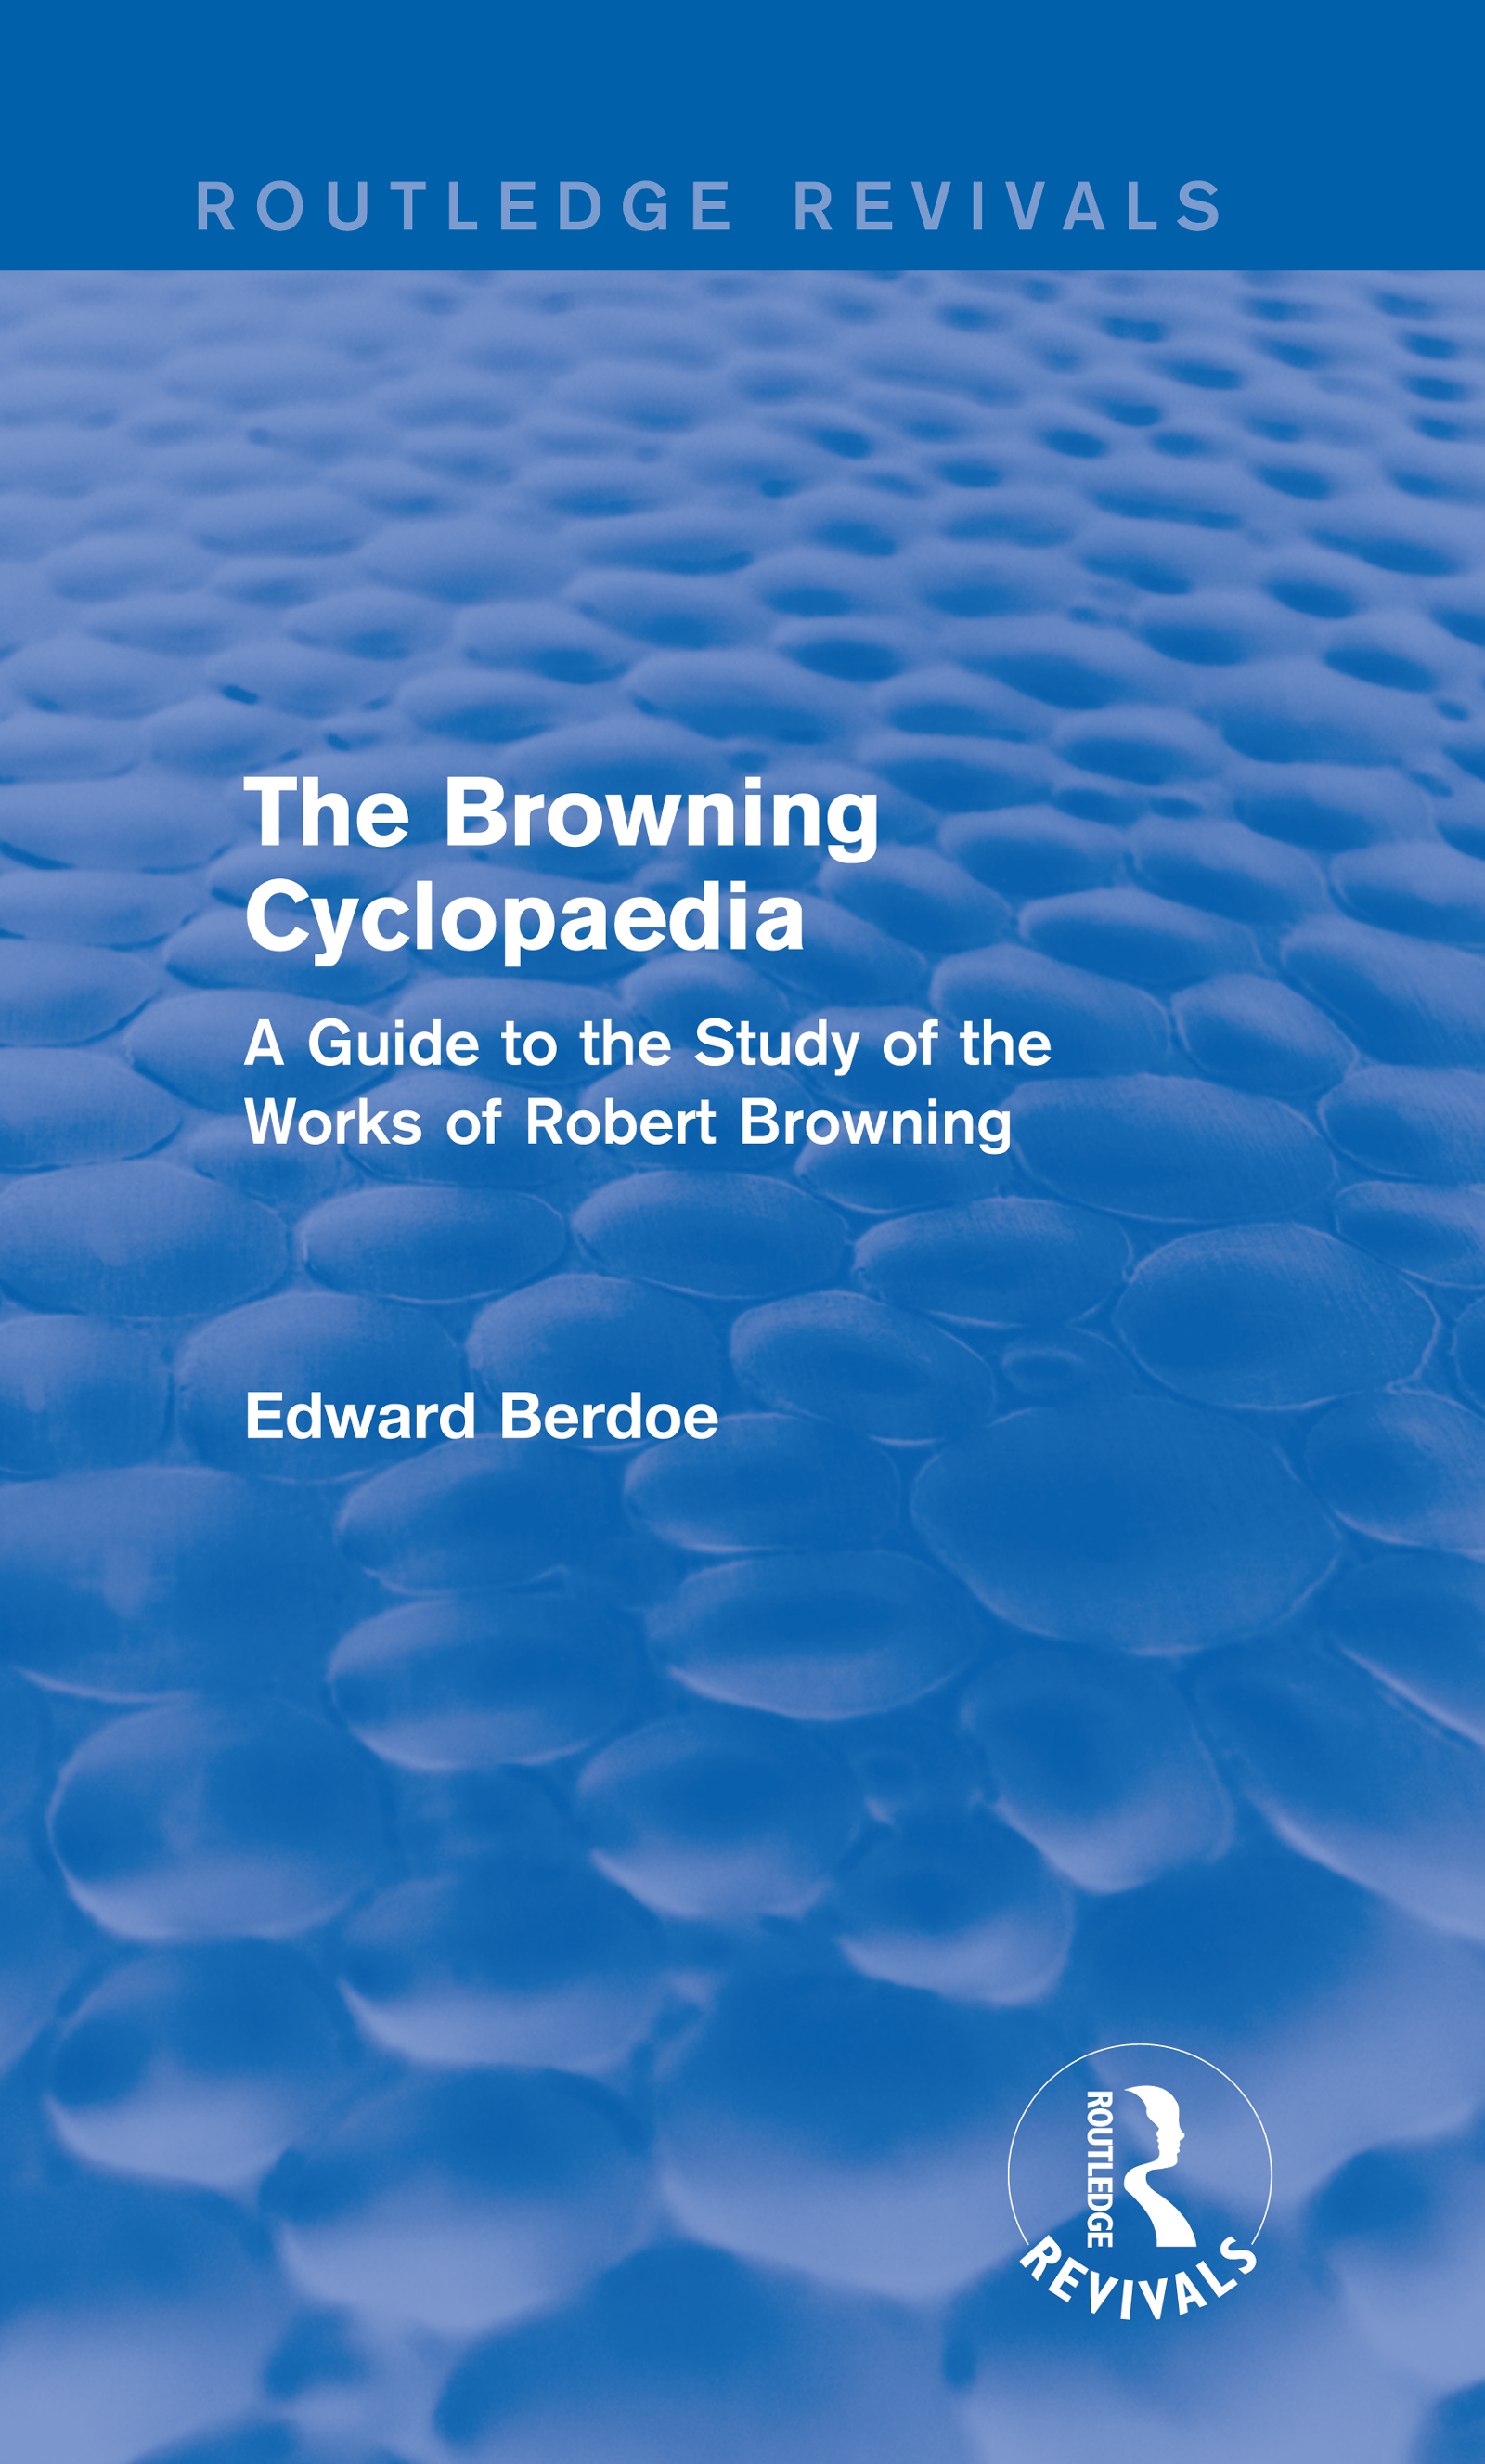 The Browning Cyclopaedia (Routledge Revivals): A Guide to the Study of the Works of Robert Browning book cover